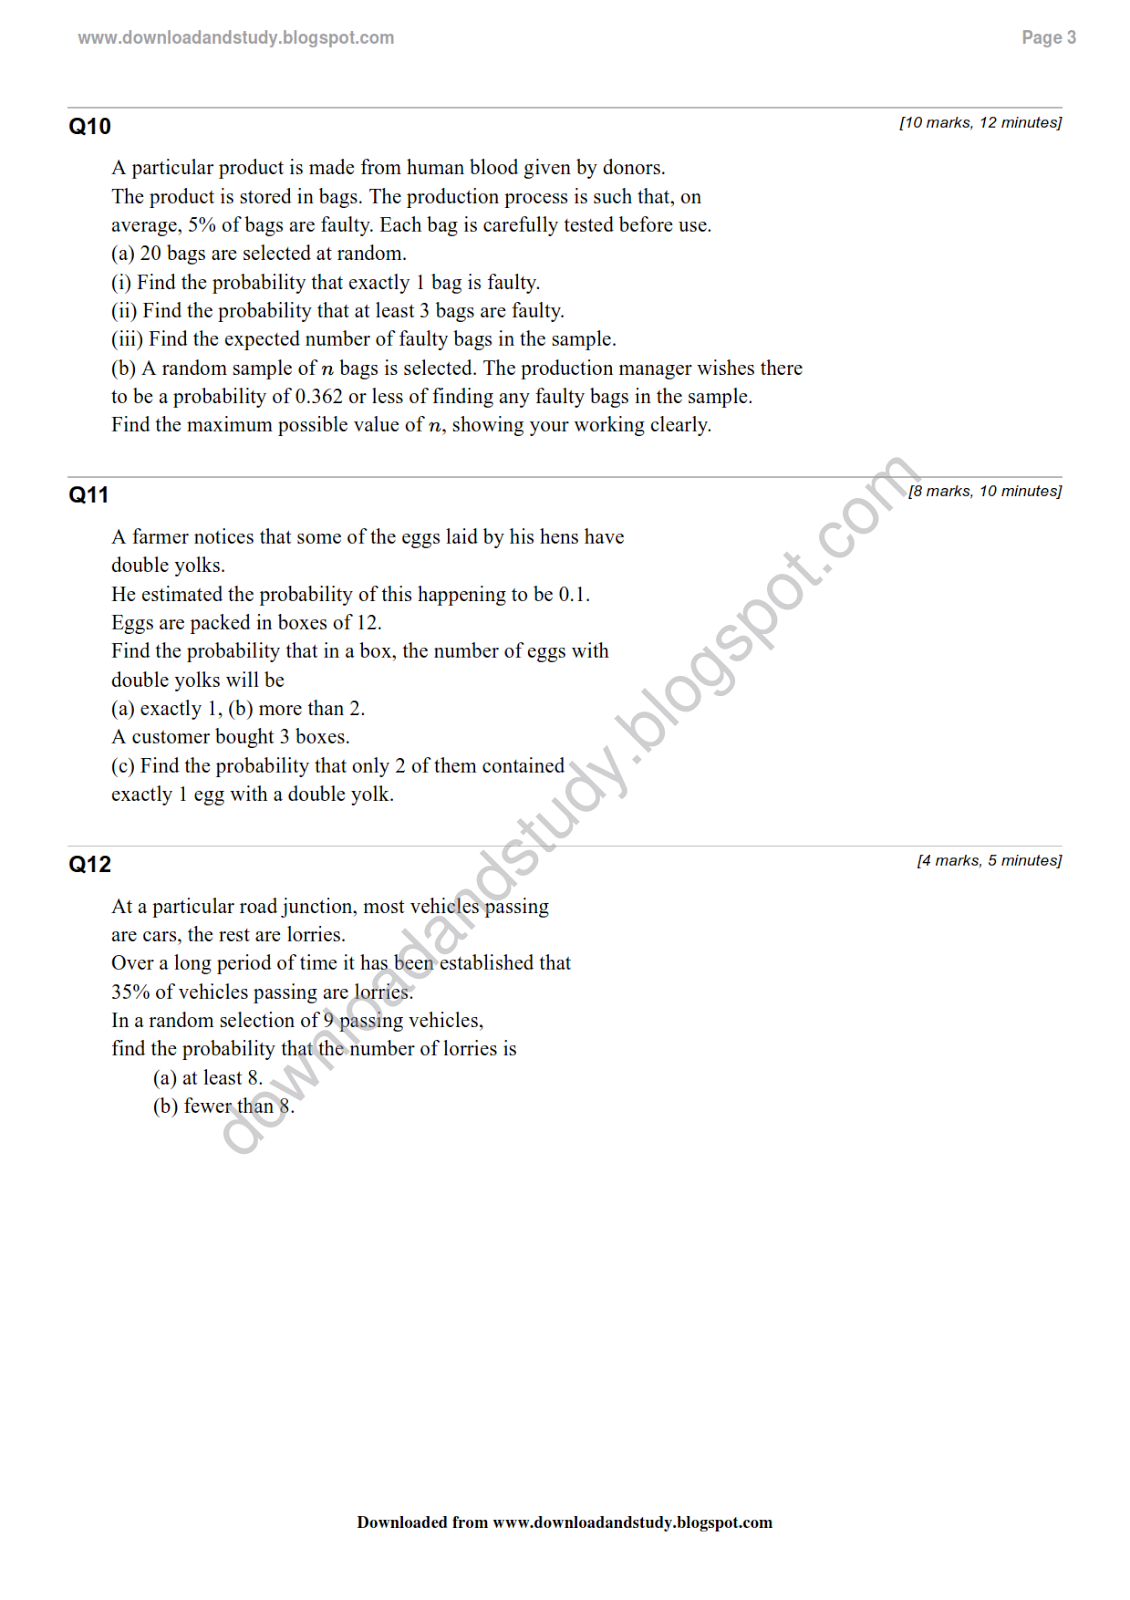 Worksheets Binomial Distribution Worksheet collection of binomial distribution worksheet sharebrowse free phinixi com